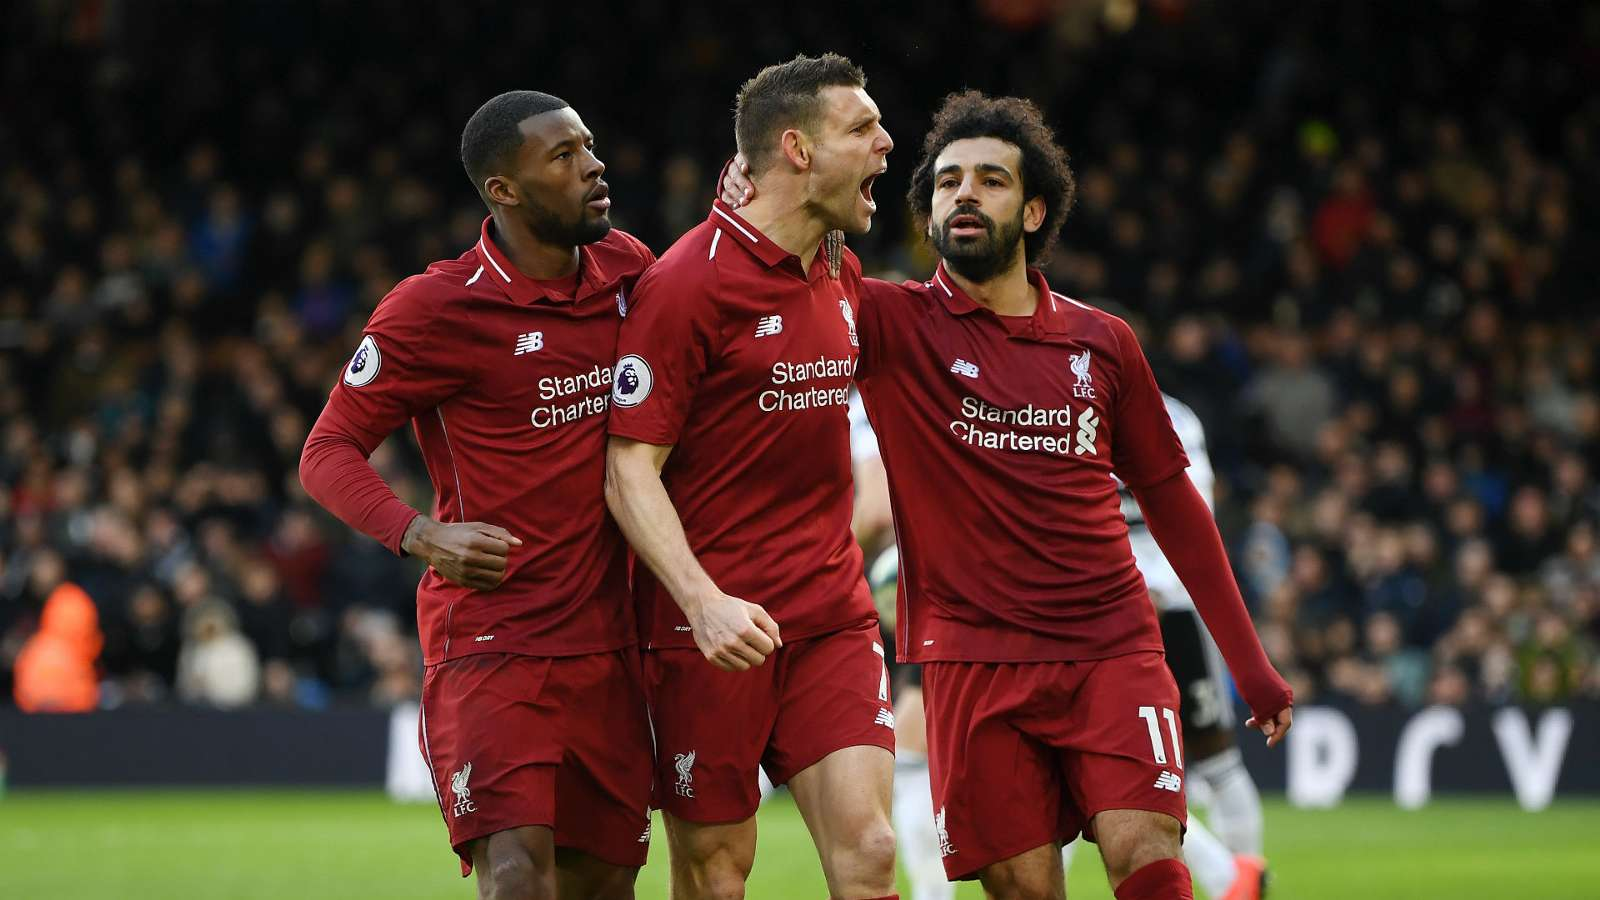 jamesmilner cropped 1je7u9fgf2k891qaaxnj3skmbp - Fulham vs Liverpool 1-2: [Premier League Highlights] [Video]